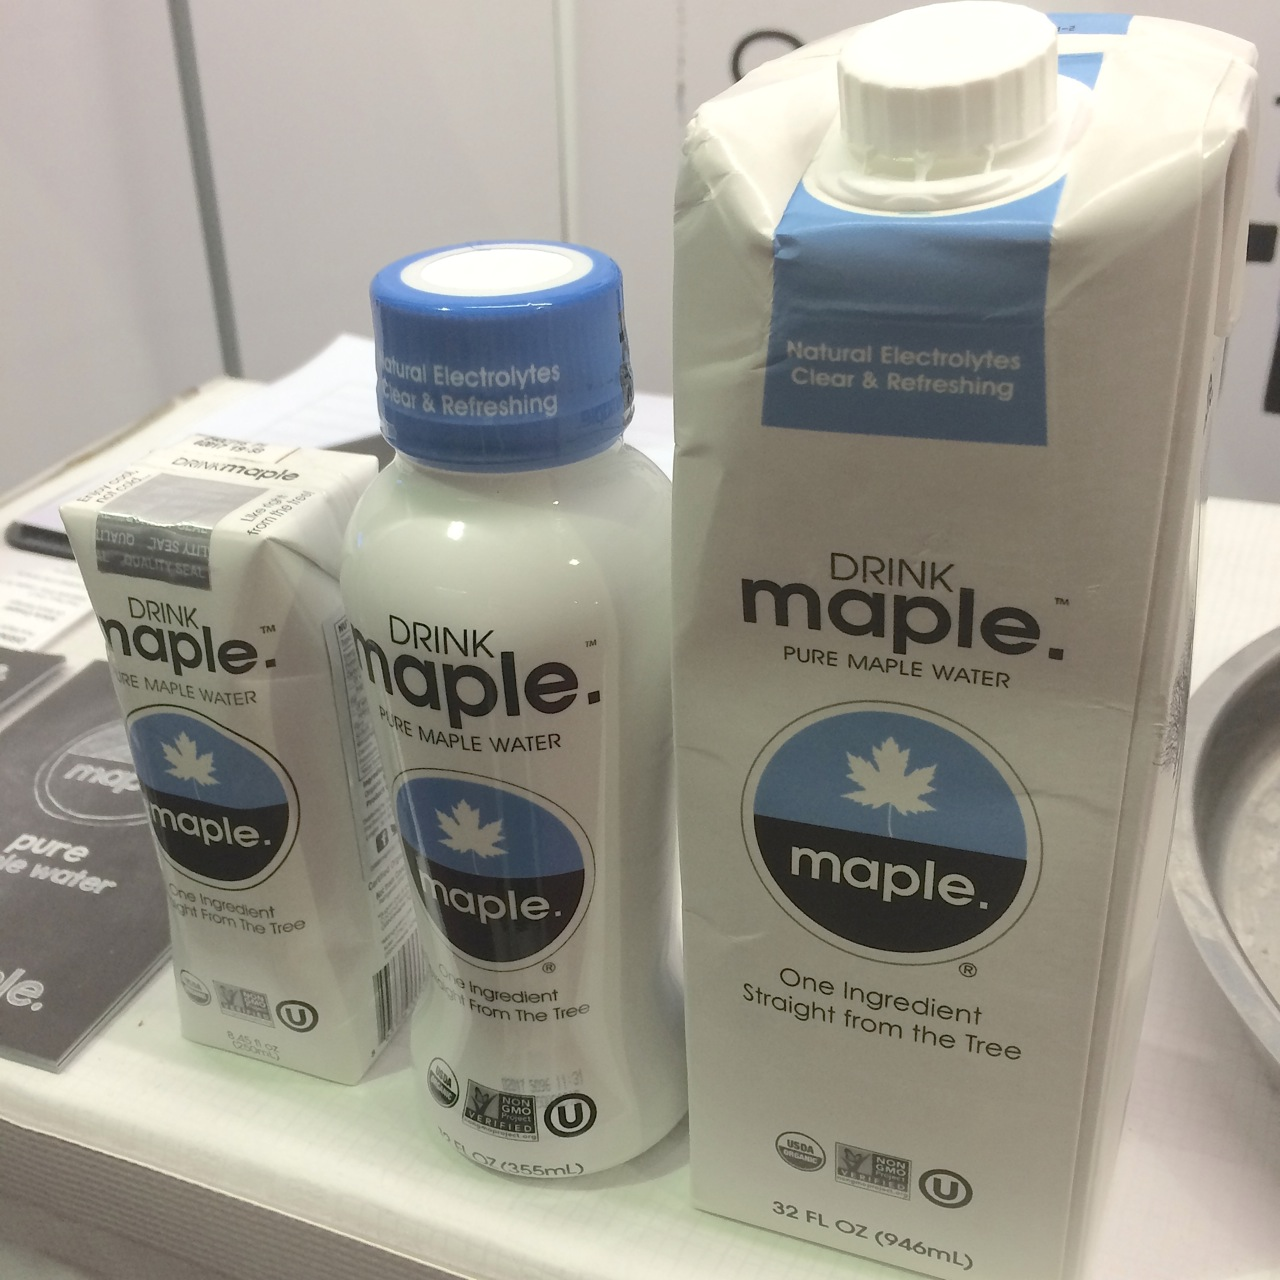 https://i1.wp.com/fatgayvegan.com/wp-content/uploads/2015/09/drink-maple.jpg?fit=1280%2C1280